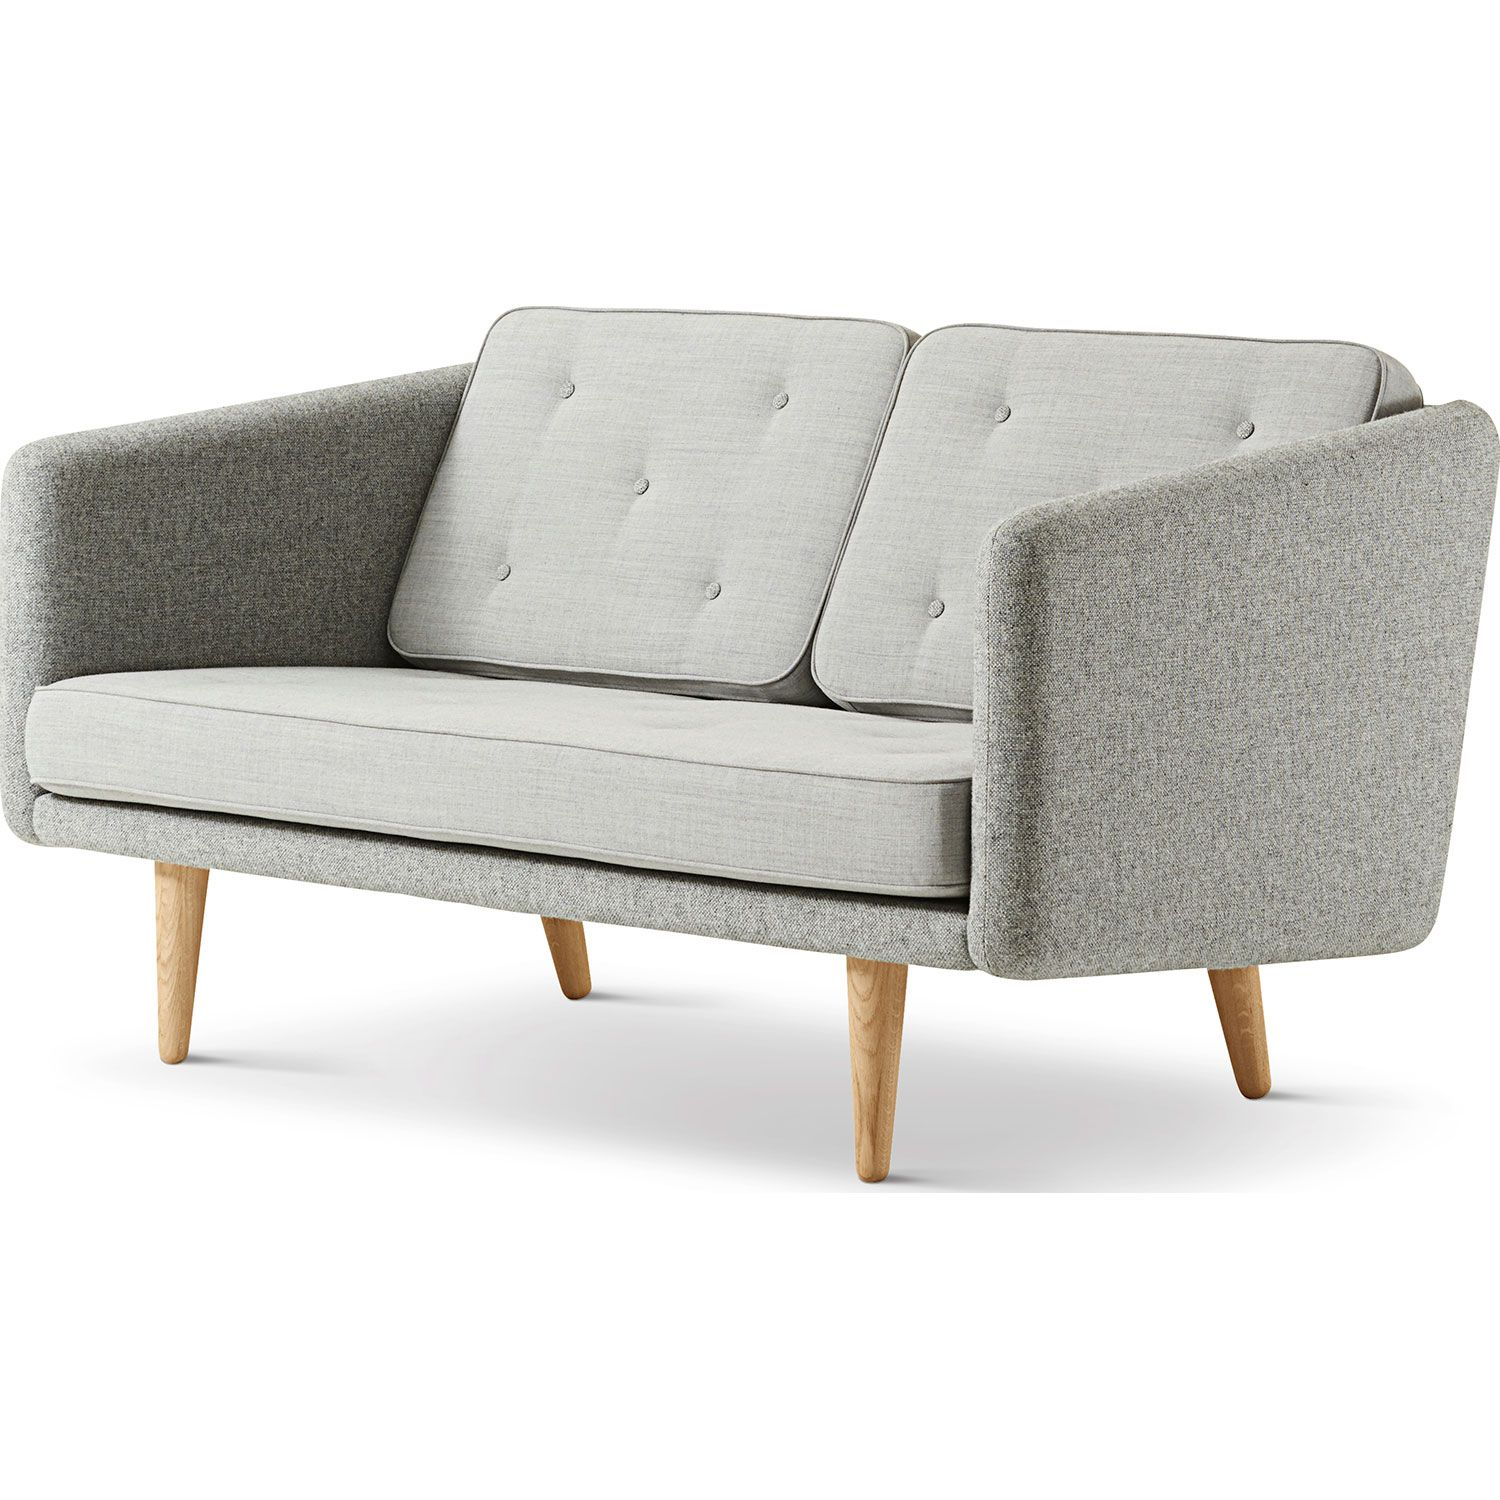 No. 1 | Sofas, No. 1 | Products | Icons of Denmark | Sofas | Pinterest